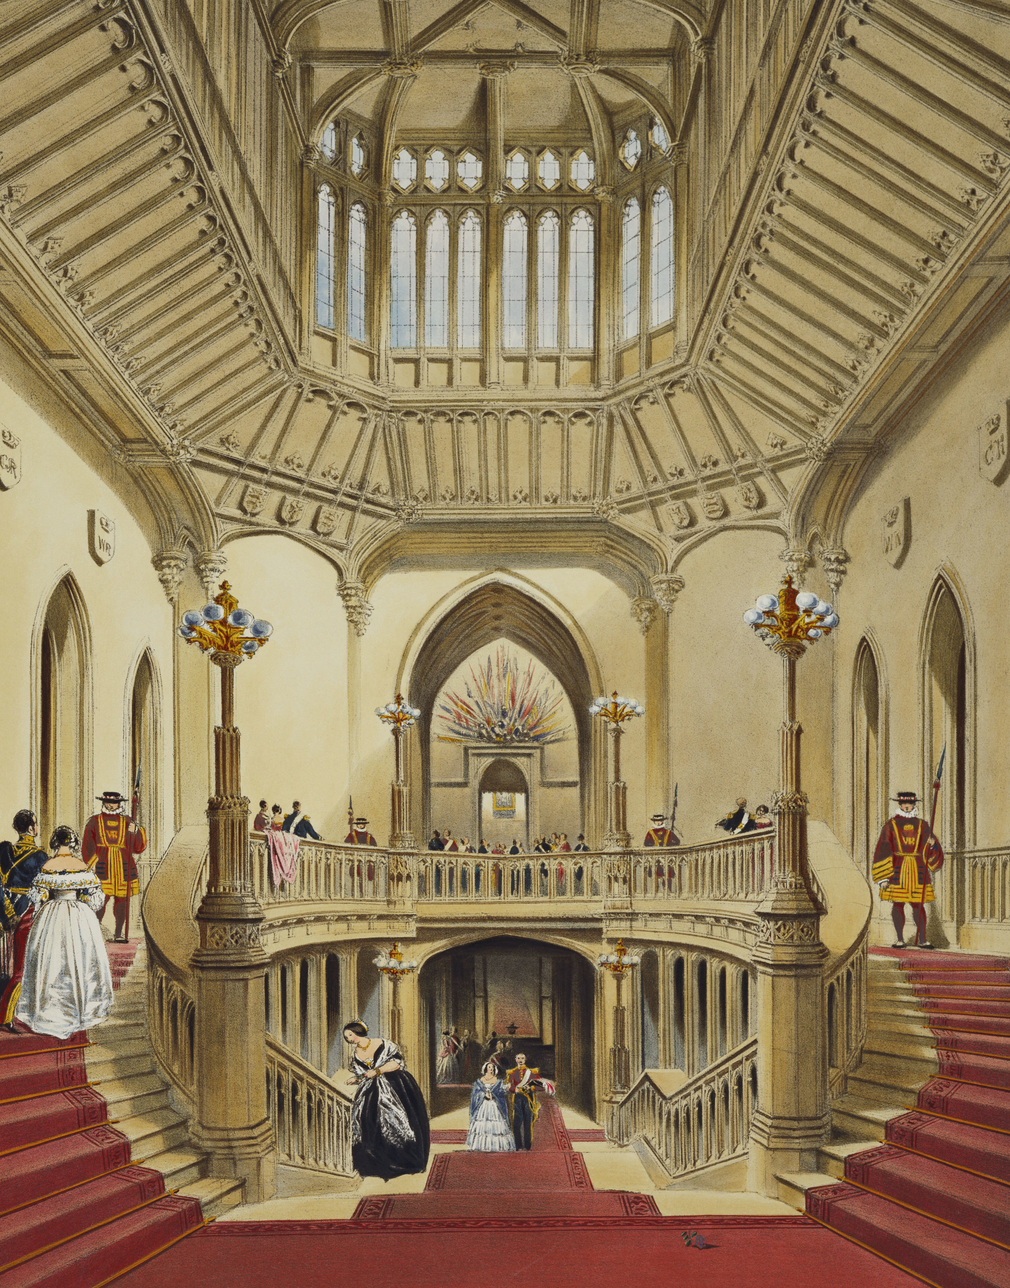 George IV's Grand Staircase, looking down from the first landing.